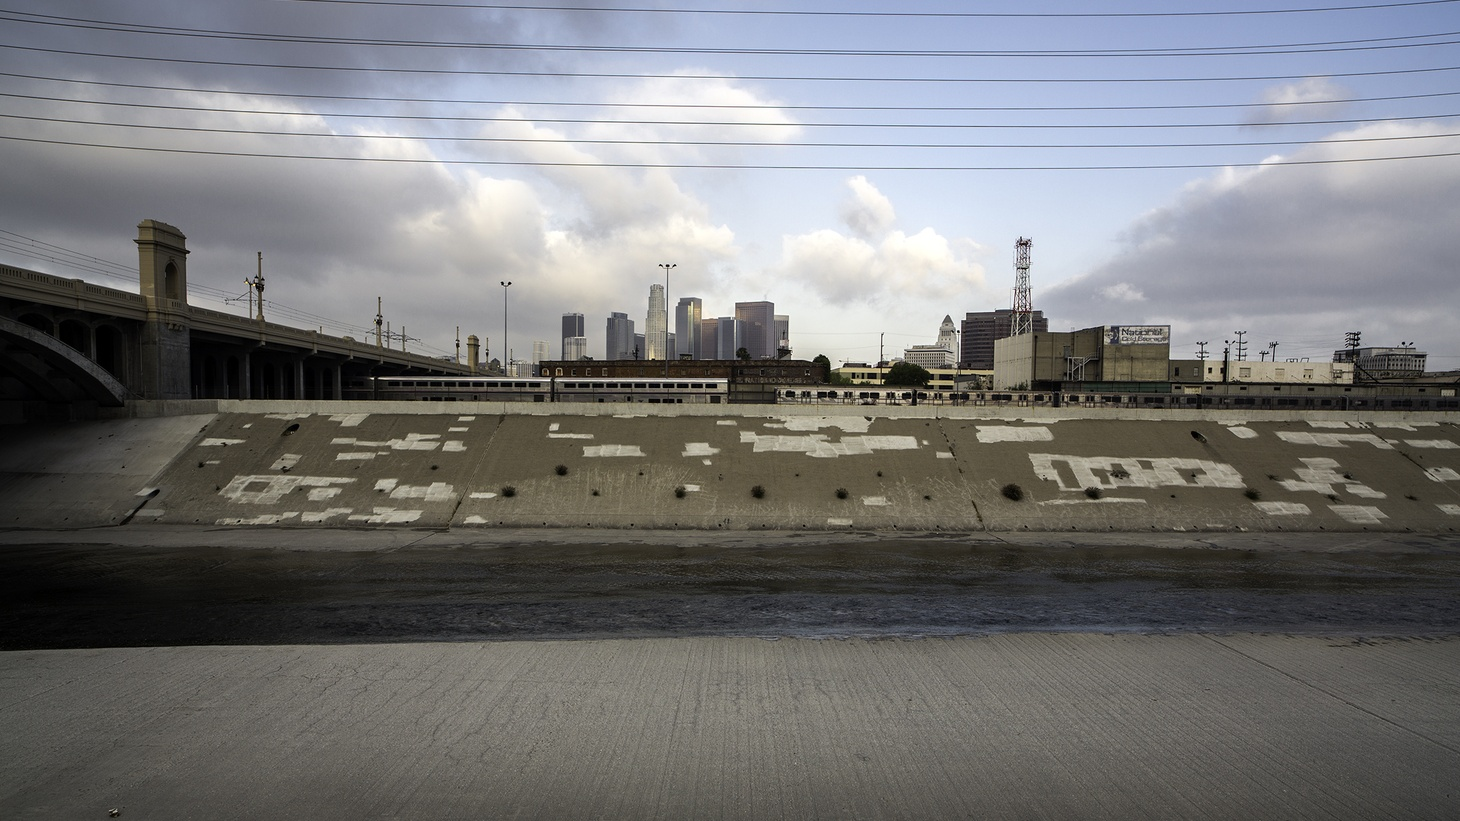 The LA River running through downtown Los Angeles.